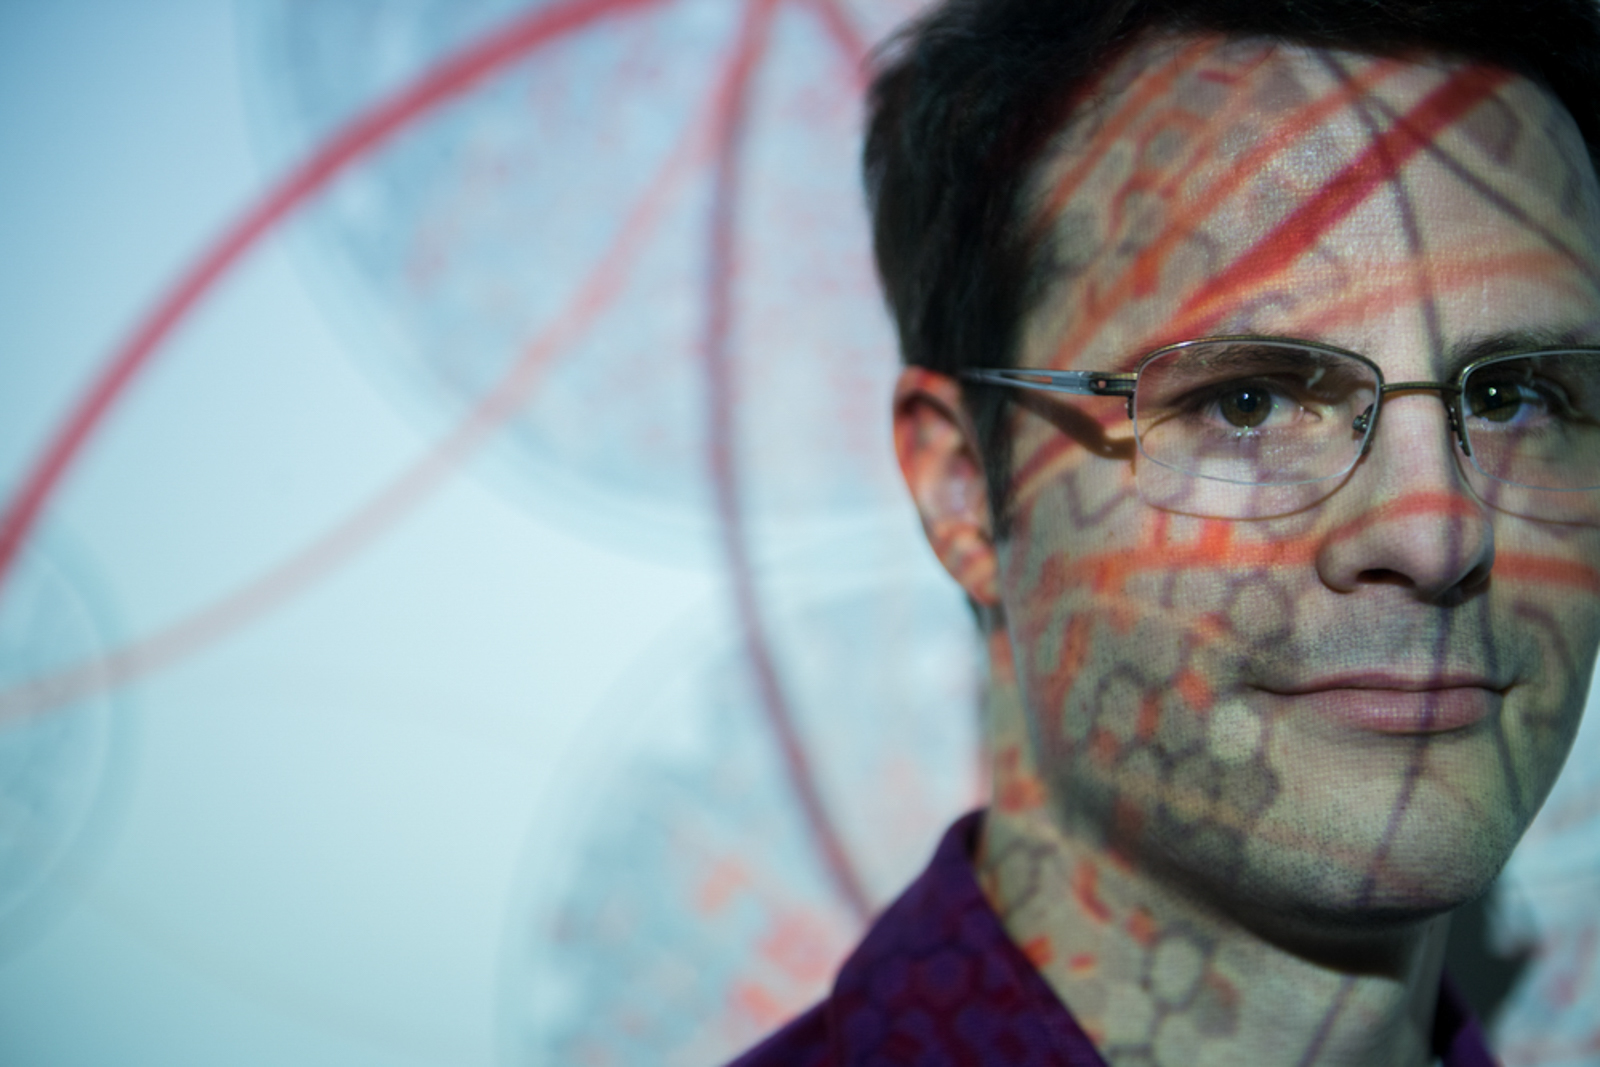 Close up of man wearing glasses with pattern projected over his face